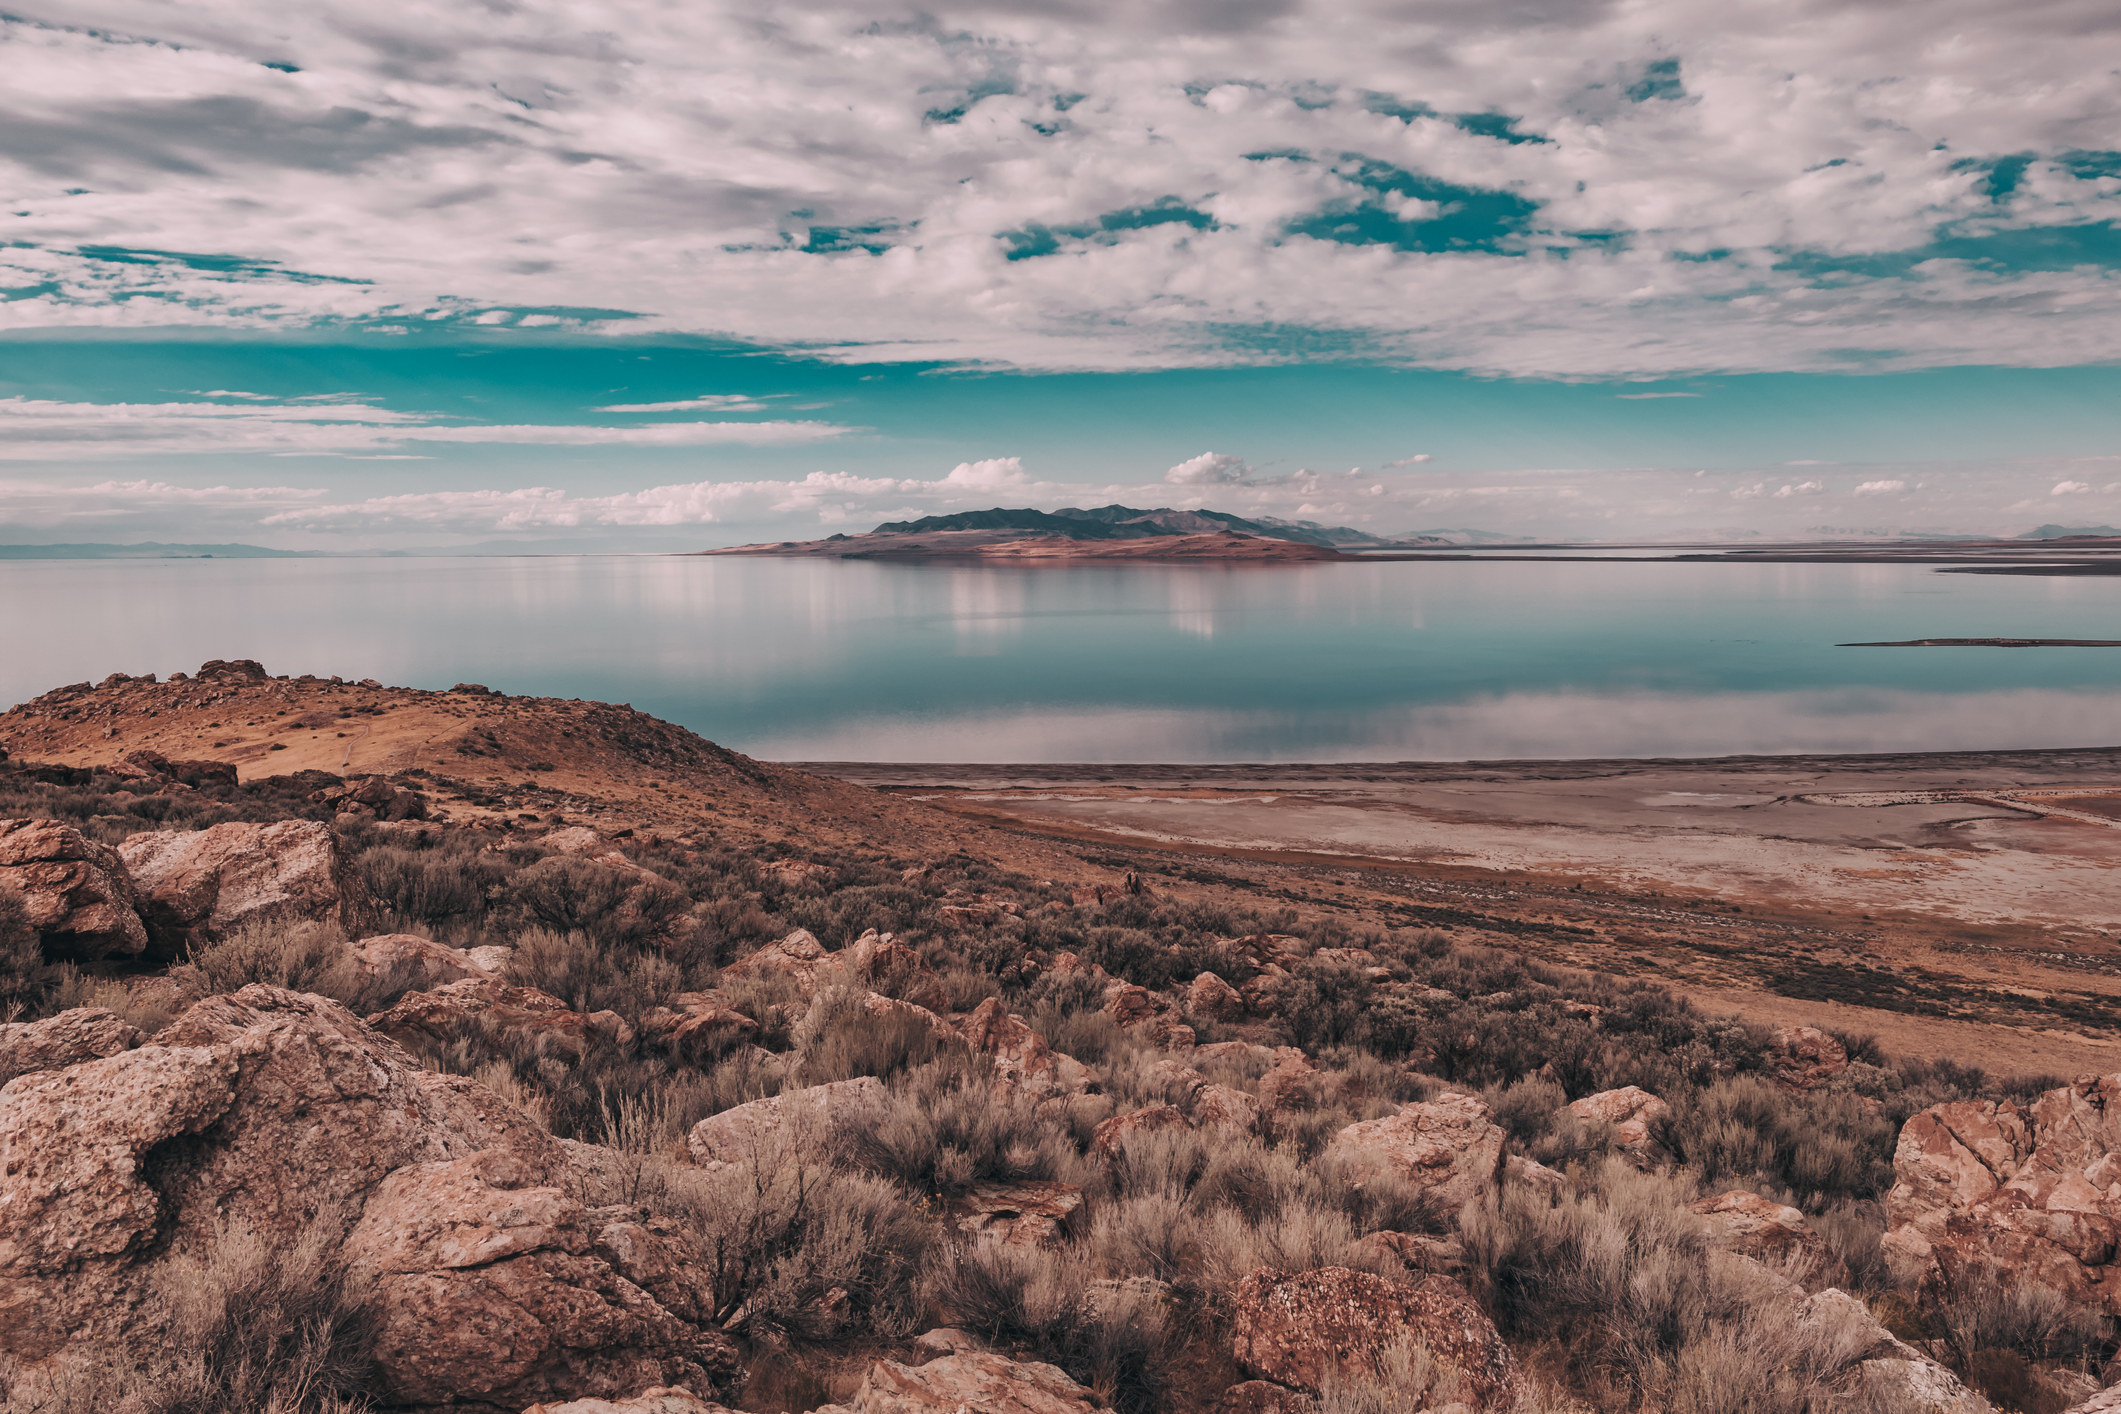 Desert landscape, water reflections, dramatic clouds over great salt lake